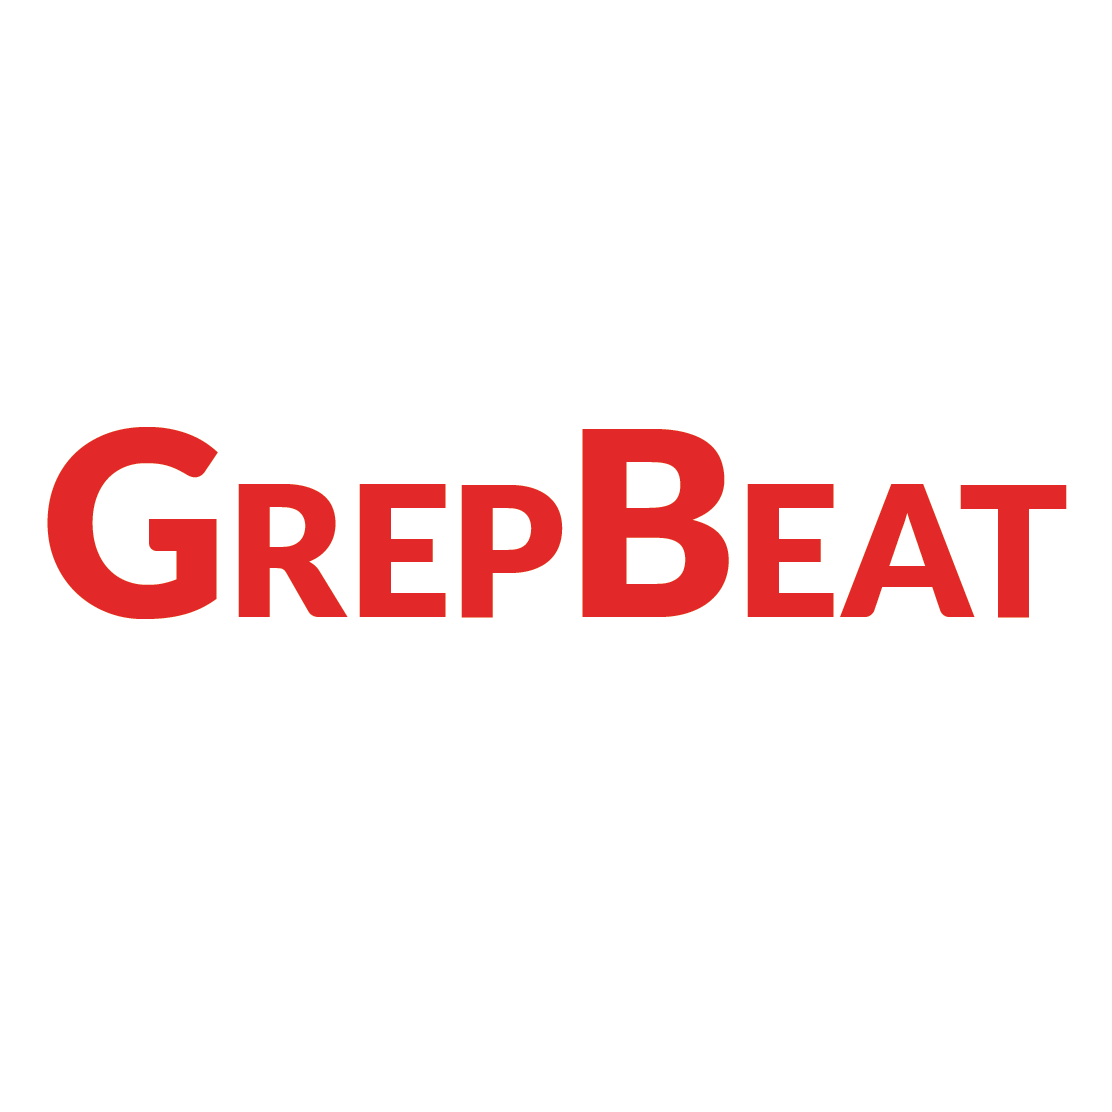 WhiteGrepBeatSquare-01